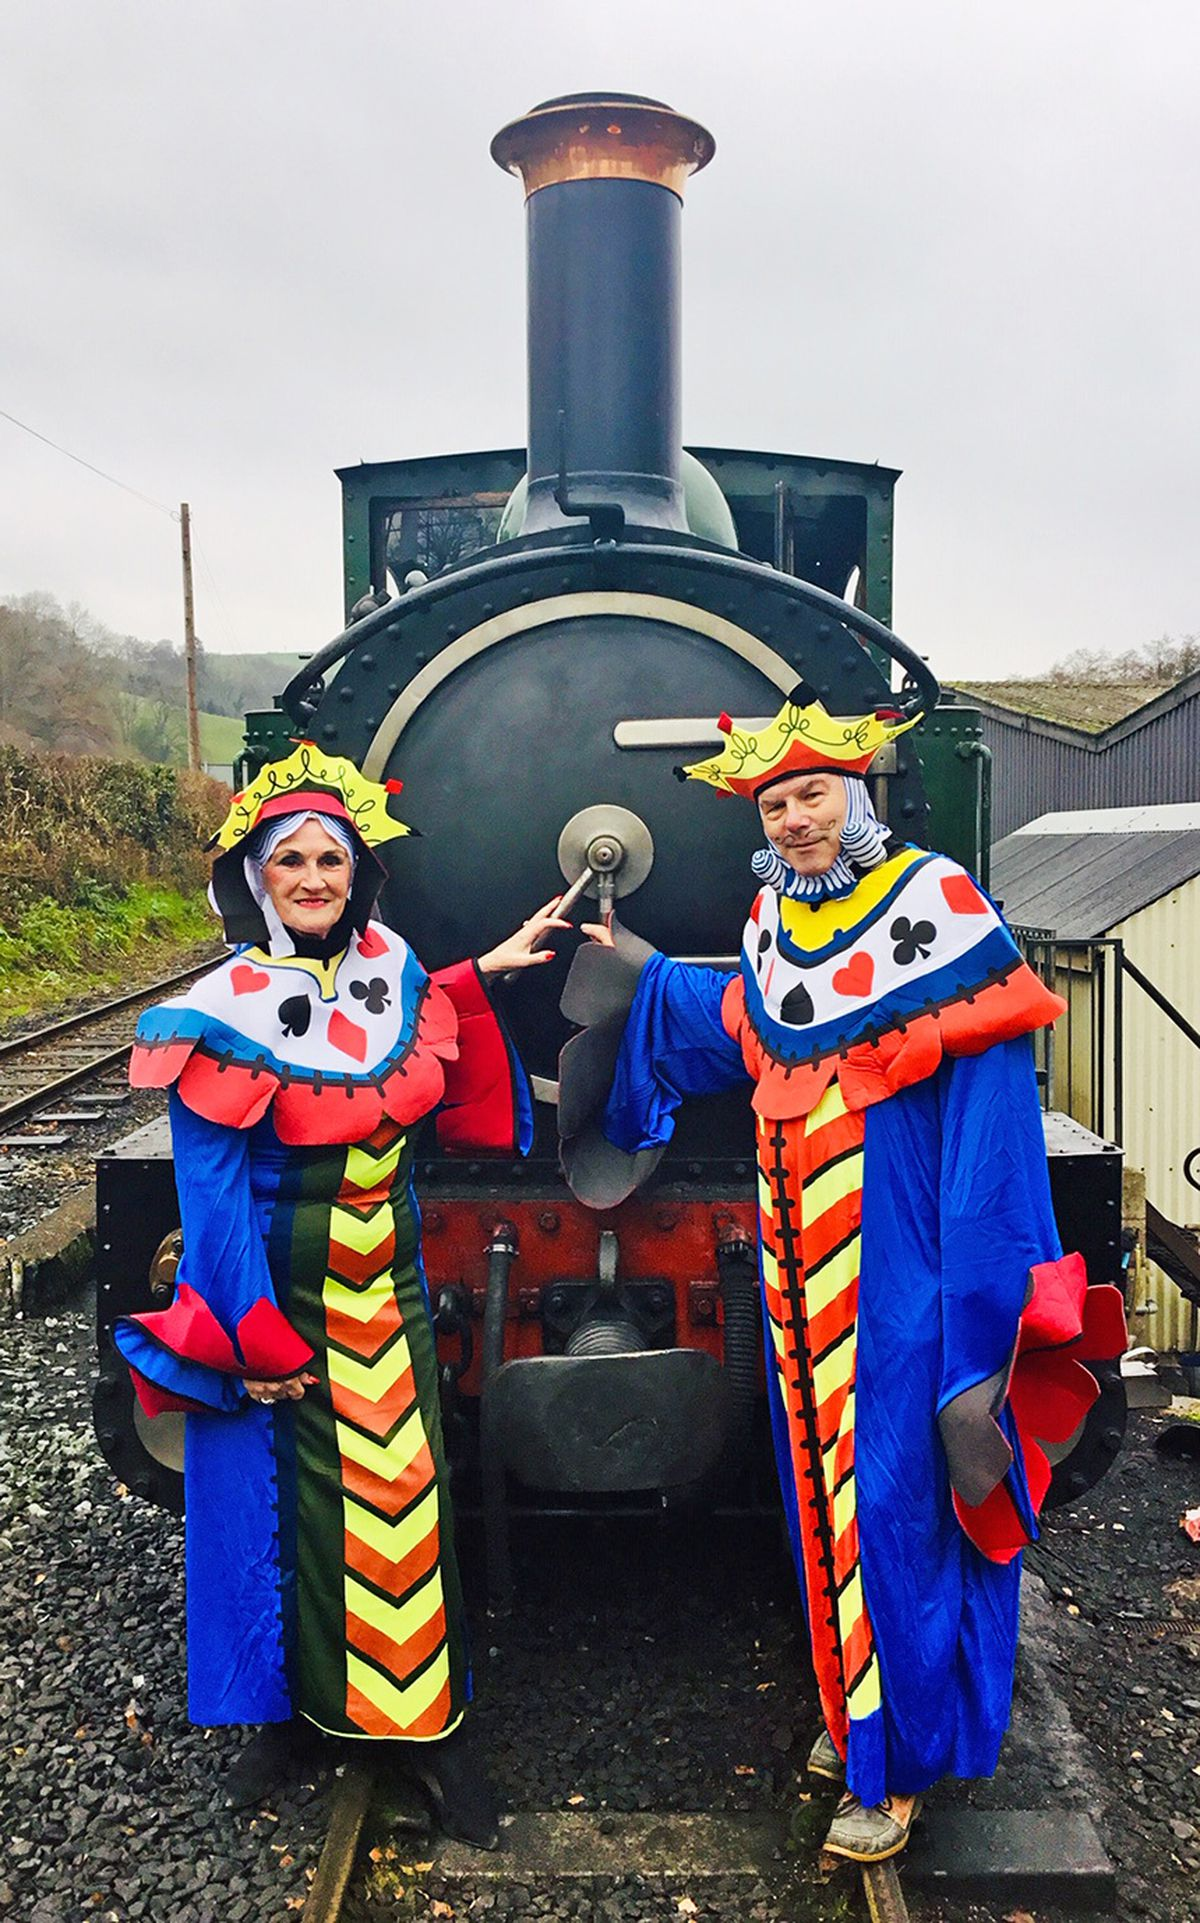 Judith and Stuart Marvin of Montgomeryshire Community Drama Association take to the railway stage before next July's theatre experience. Photo: C Davies